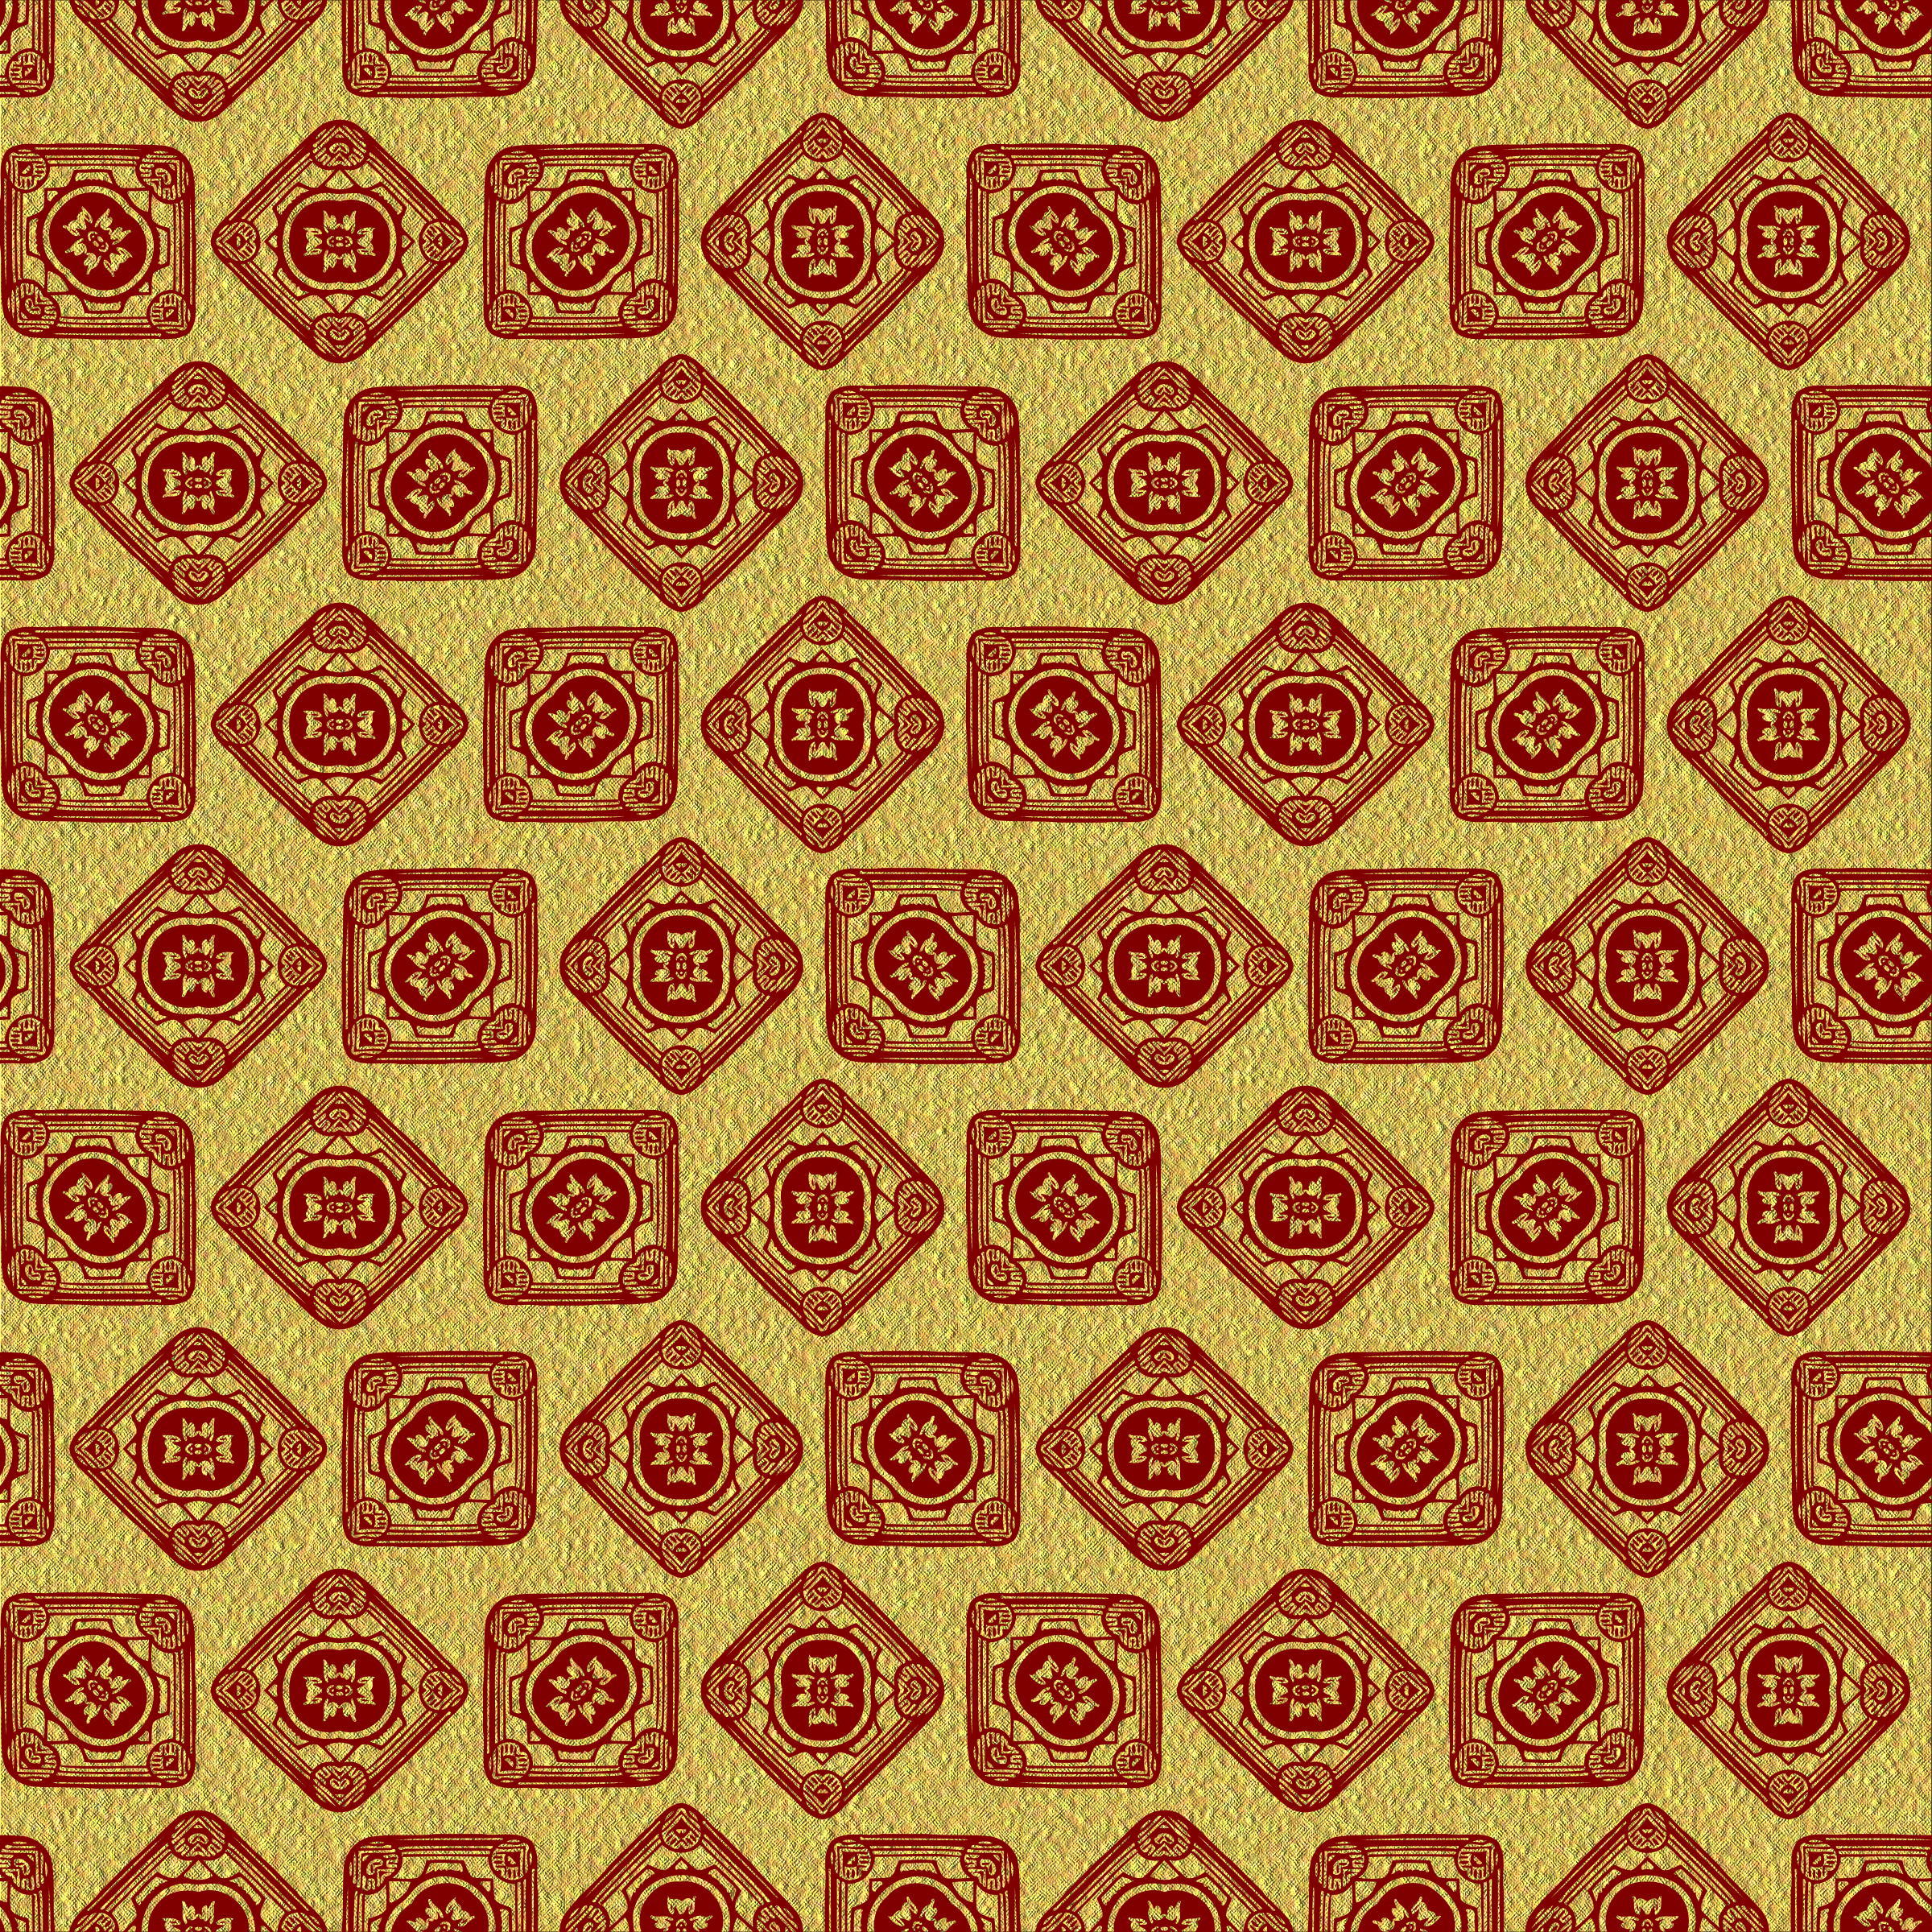 Background pattern 187 (colour) by Firkin